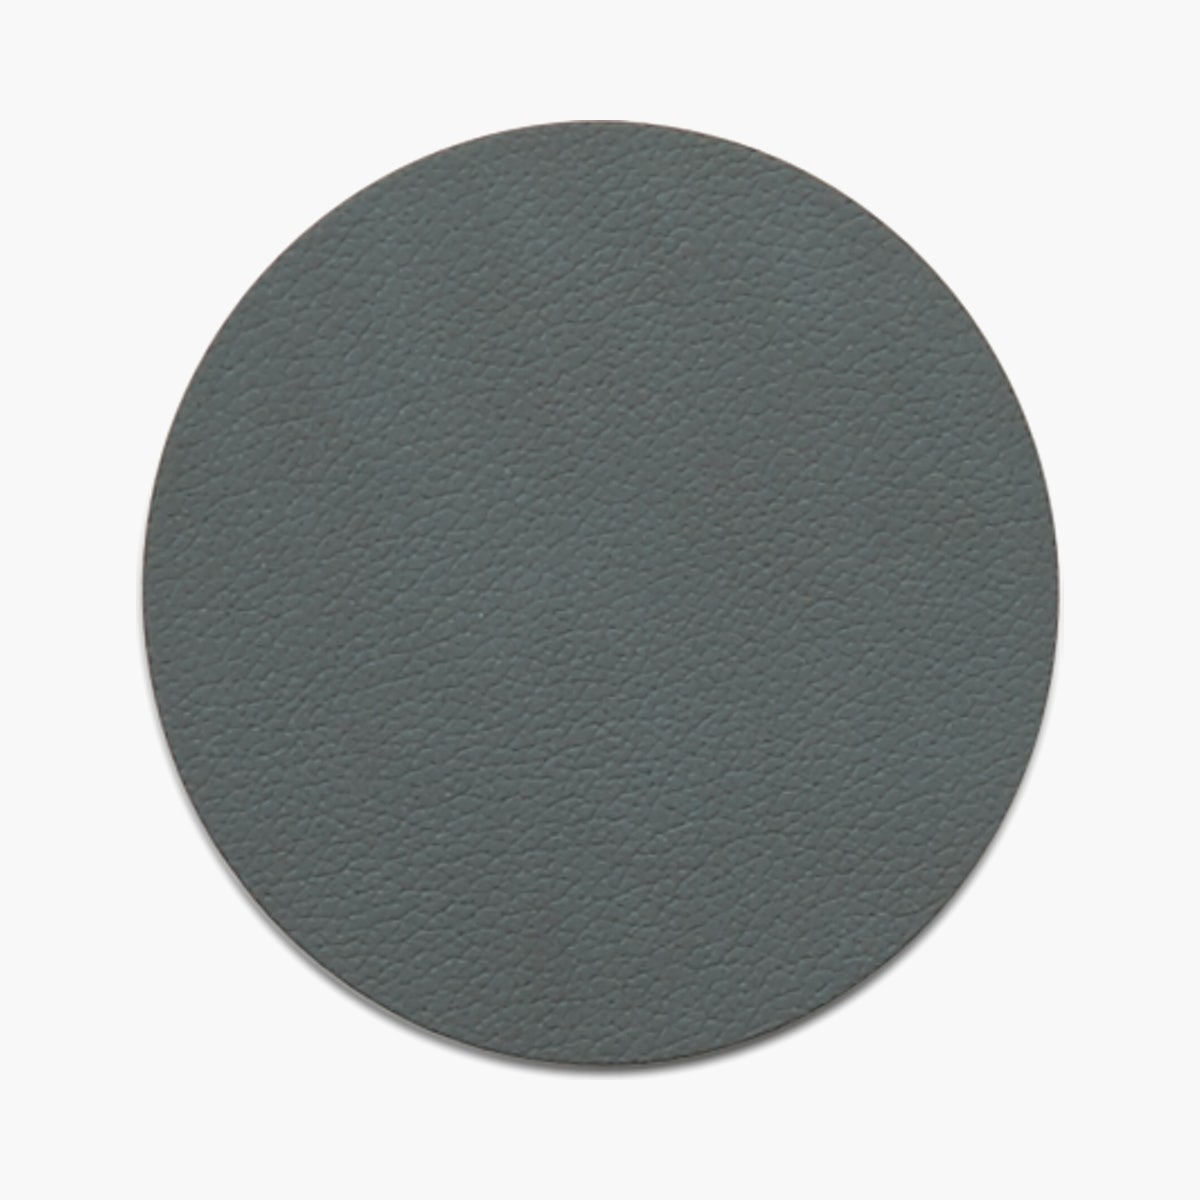 Nupo Leather Coasters